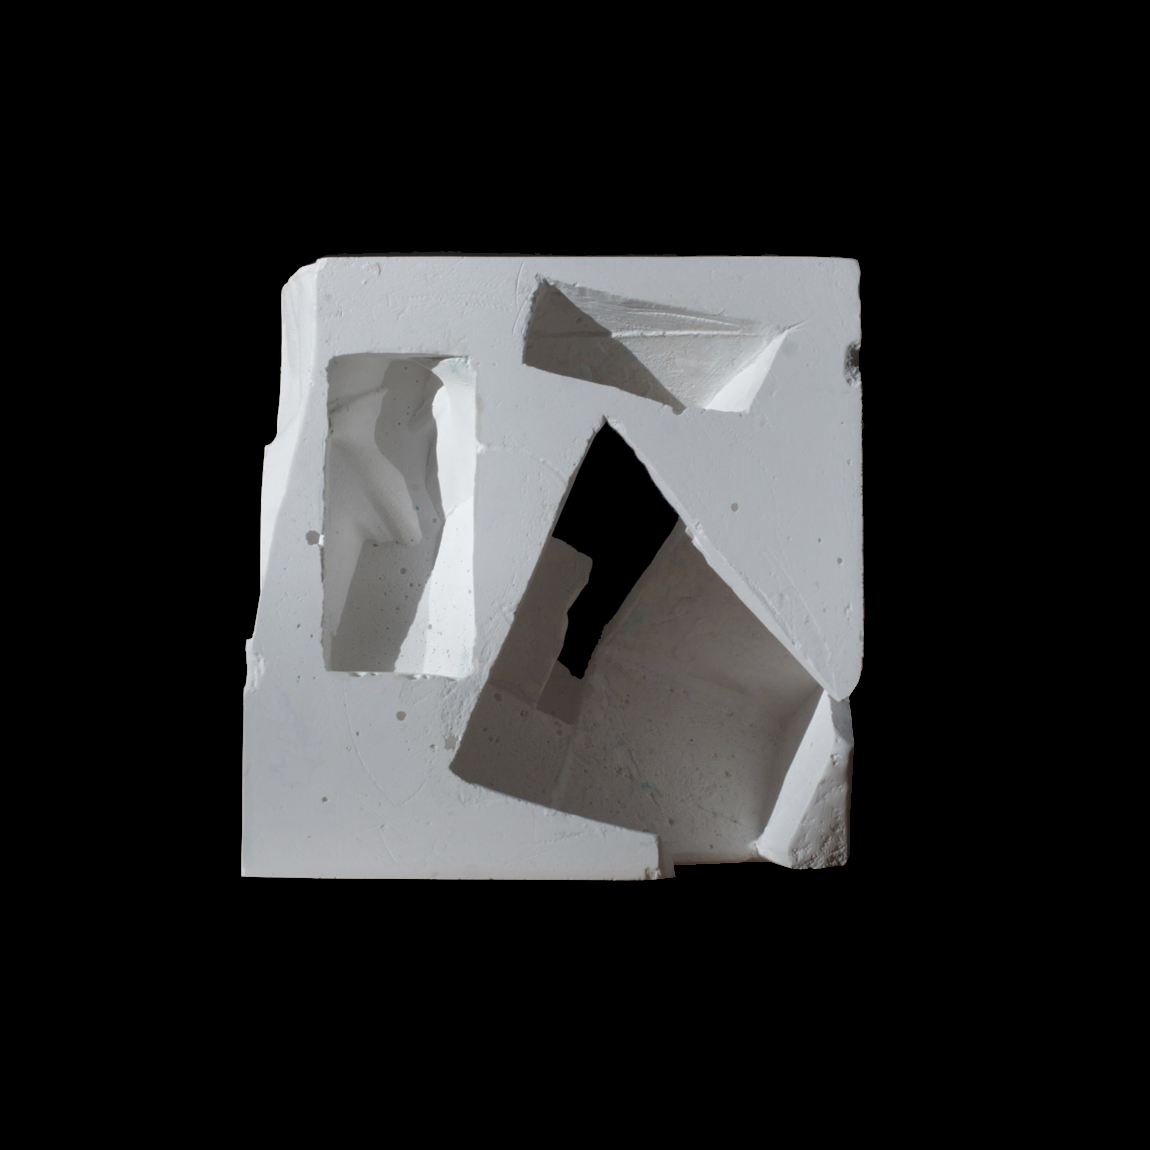 plaster_7.png